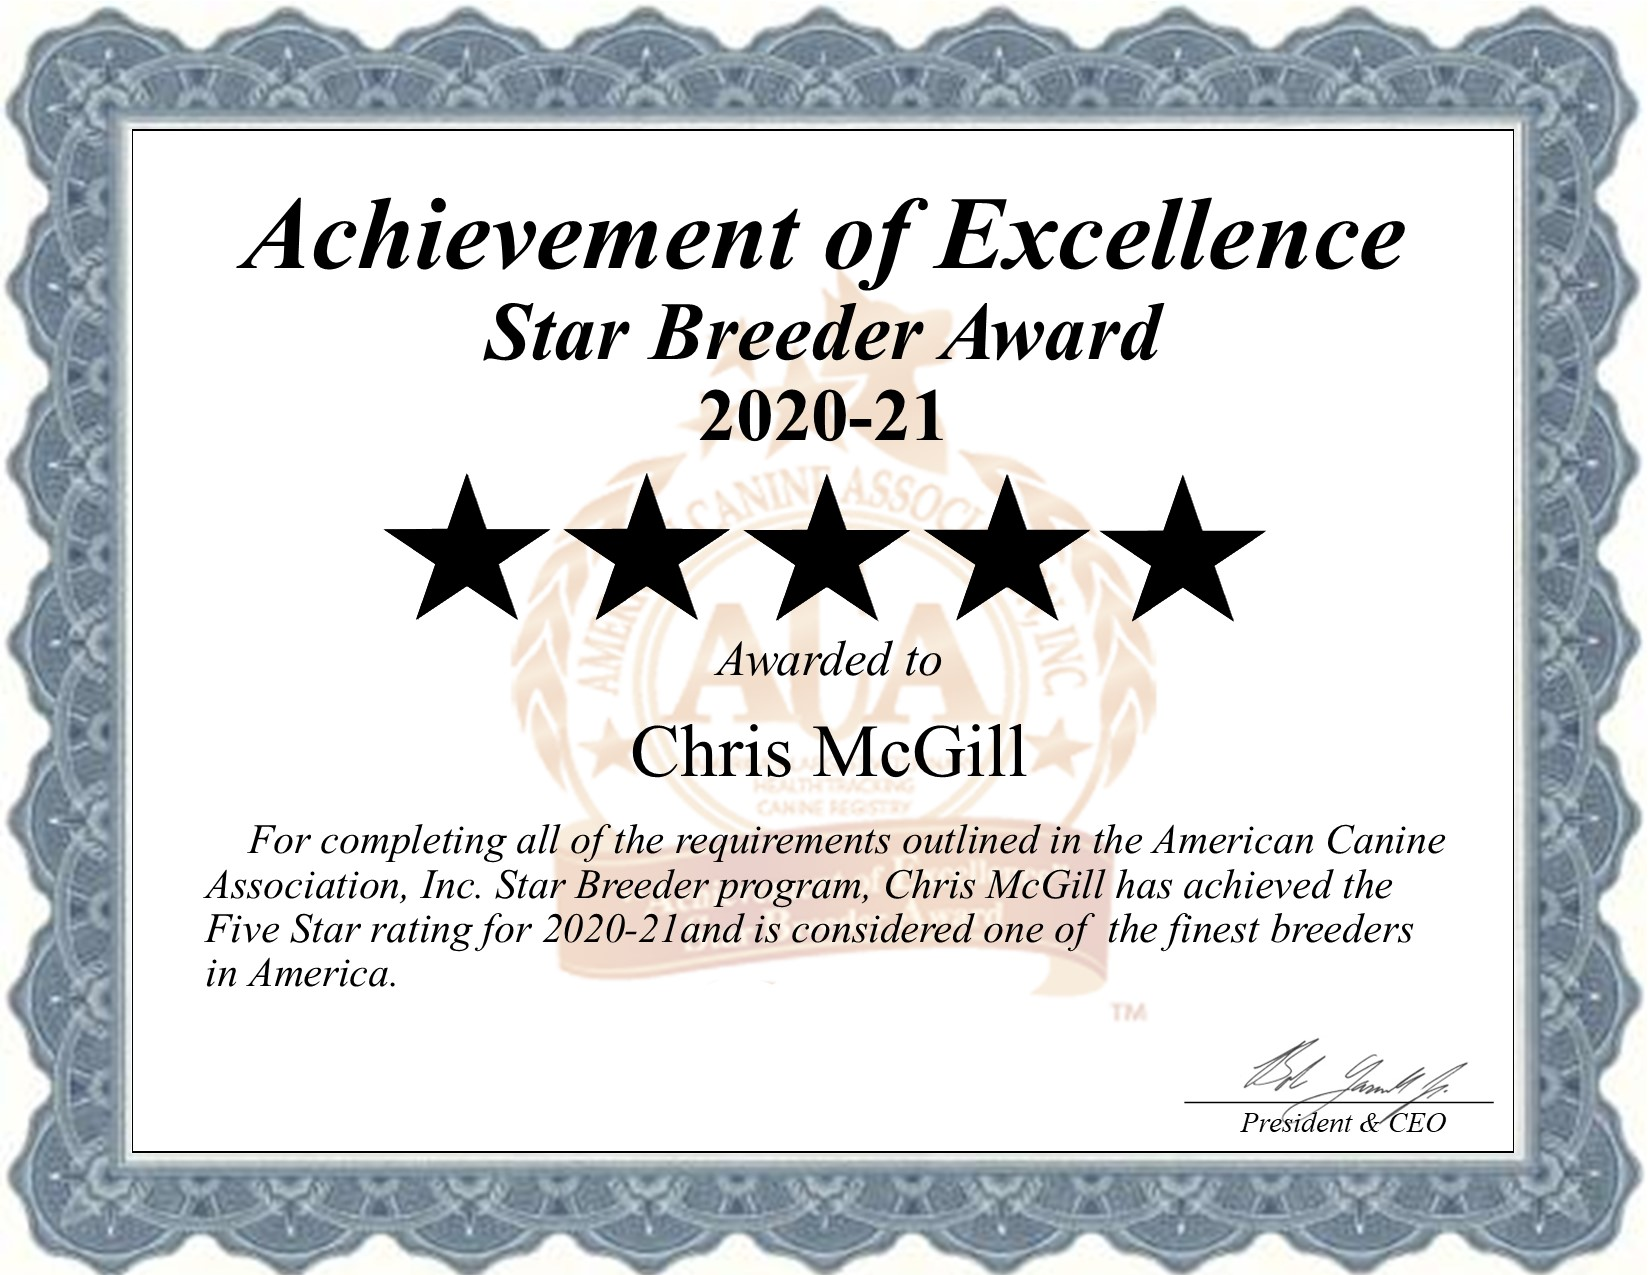 Chris, McGill, dog, breeder, star, certificate, Chris-McGill, McAlester, OK, Oklahoma, puppy, dog, kennels, mill, puppymill, usda, 5-star, aca, ica, registered, Miniature-Pinscher, 73-A-1257